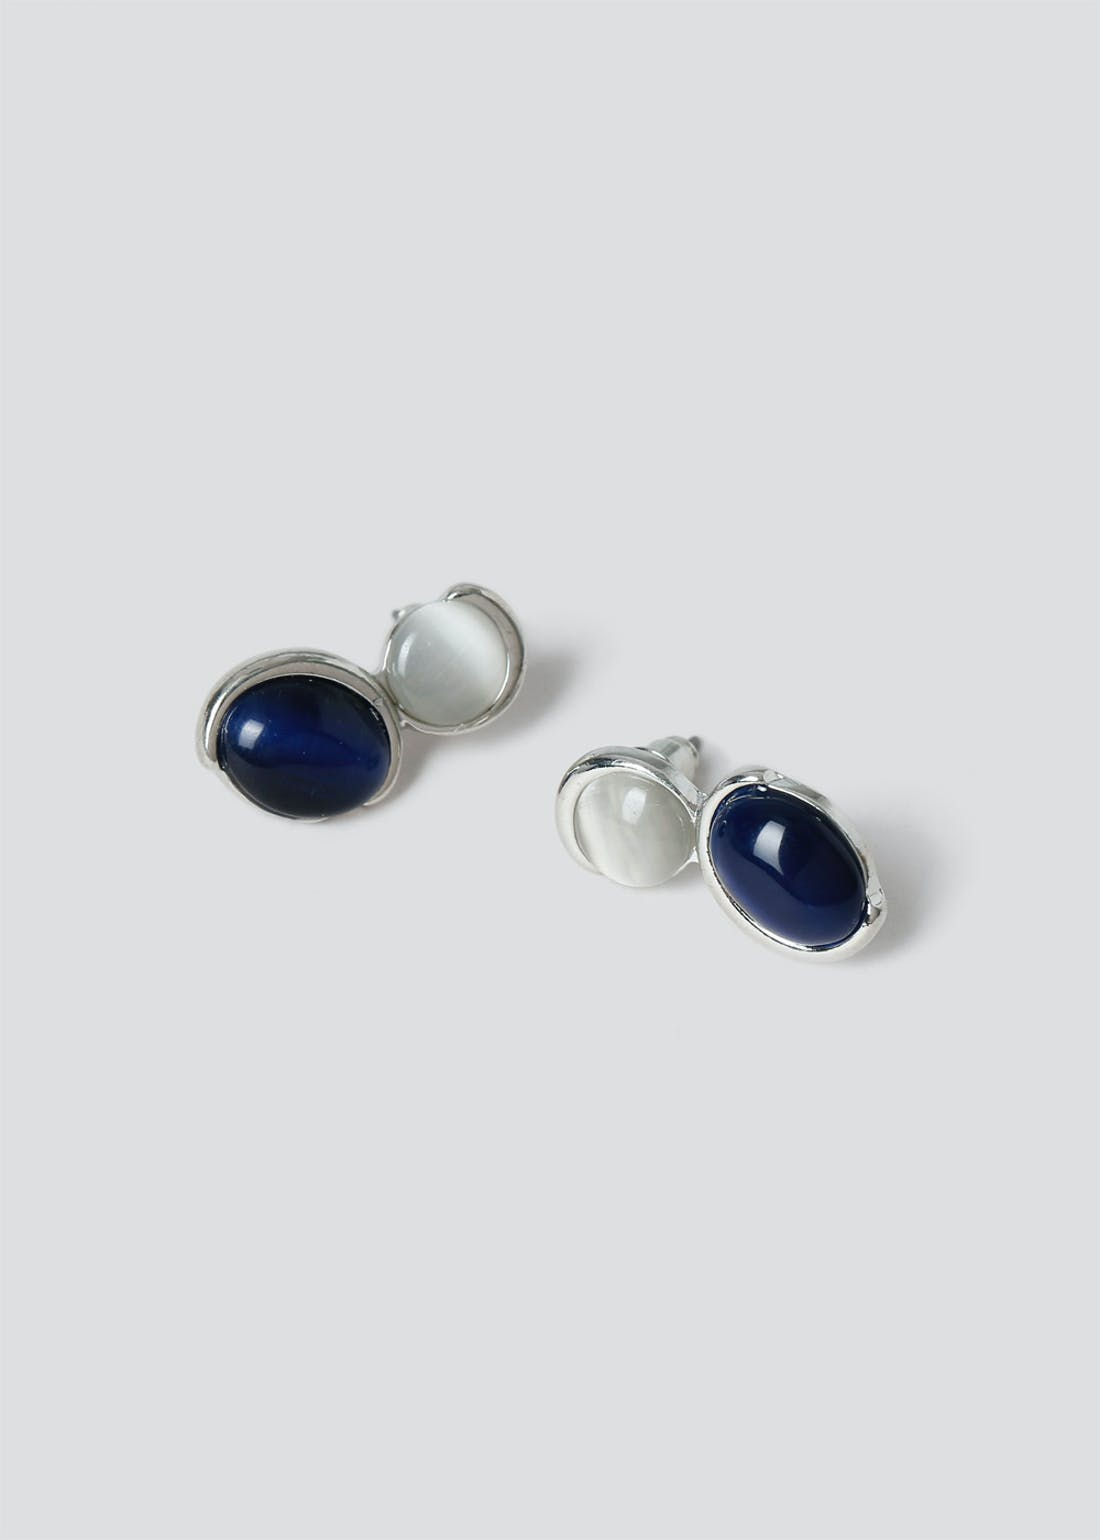 Double Cats Eye Stud Earrings